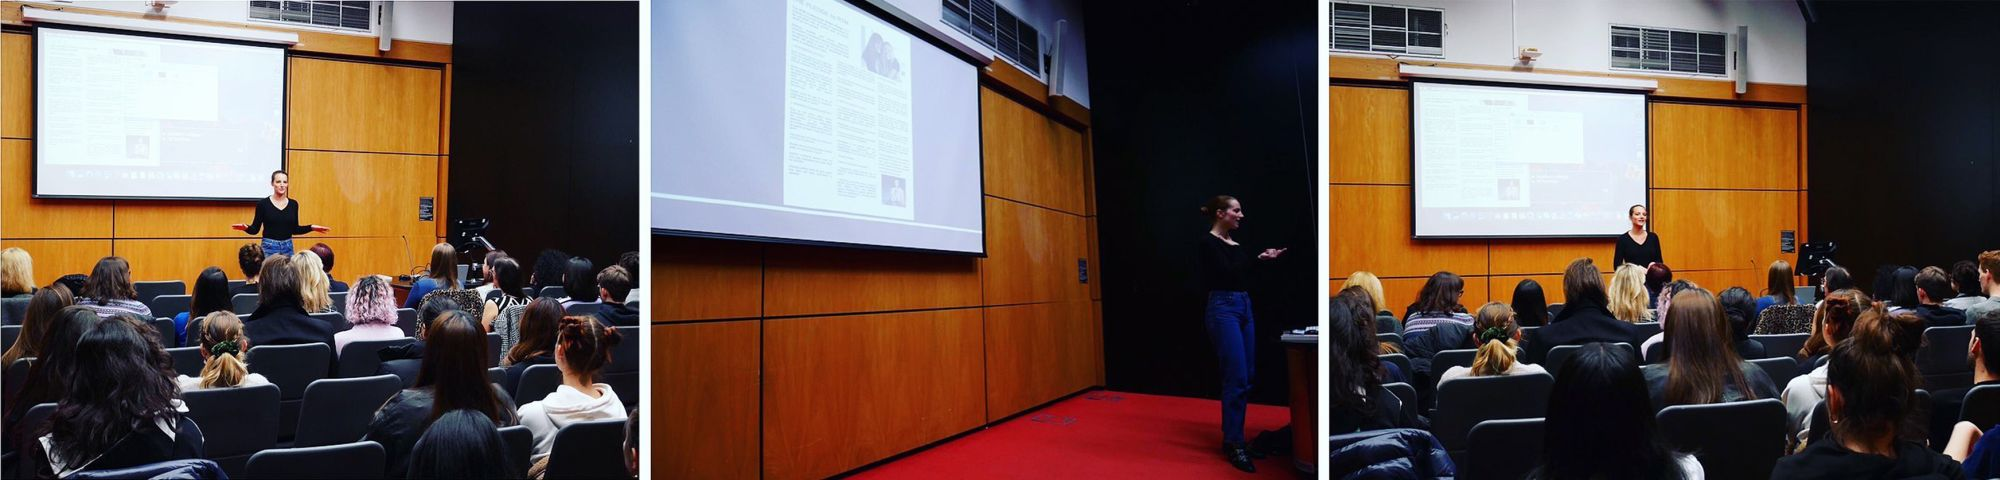 Victoire Duaxerre giving presentation in lecture hall